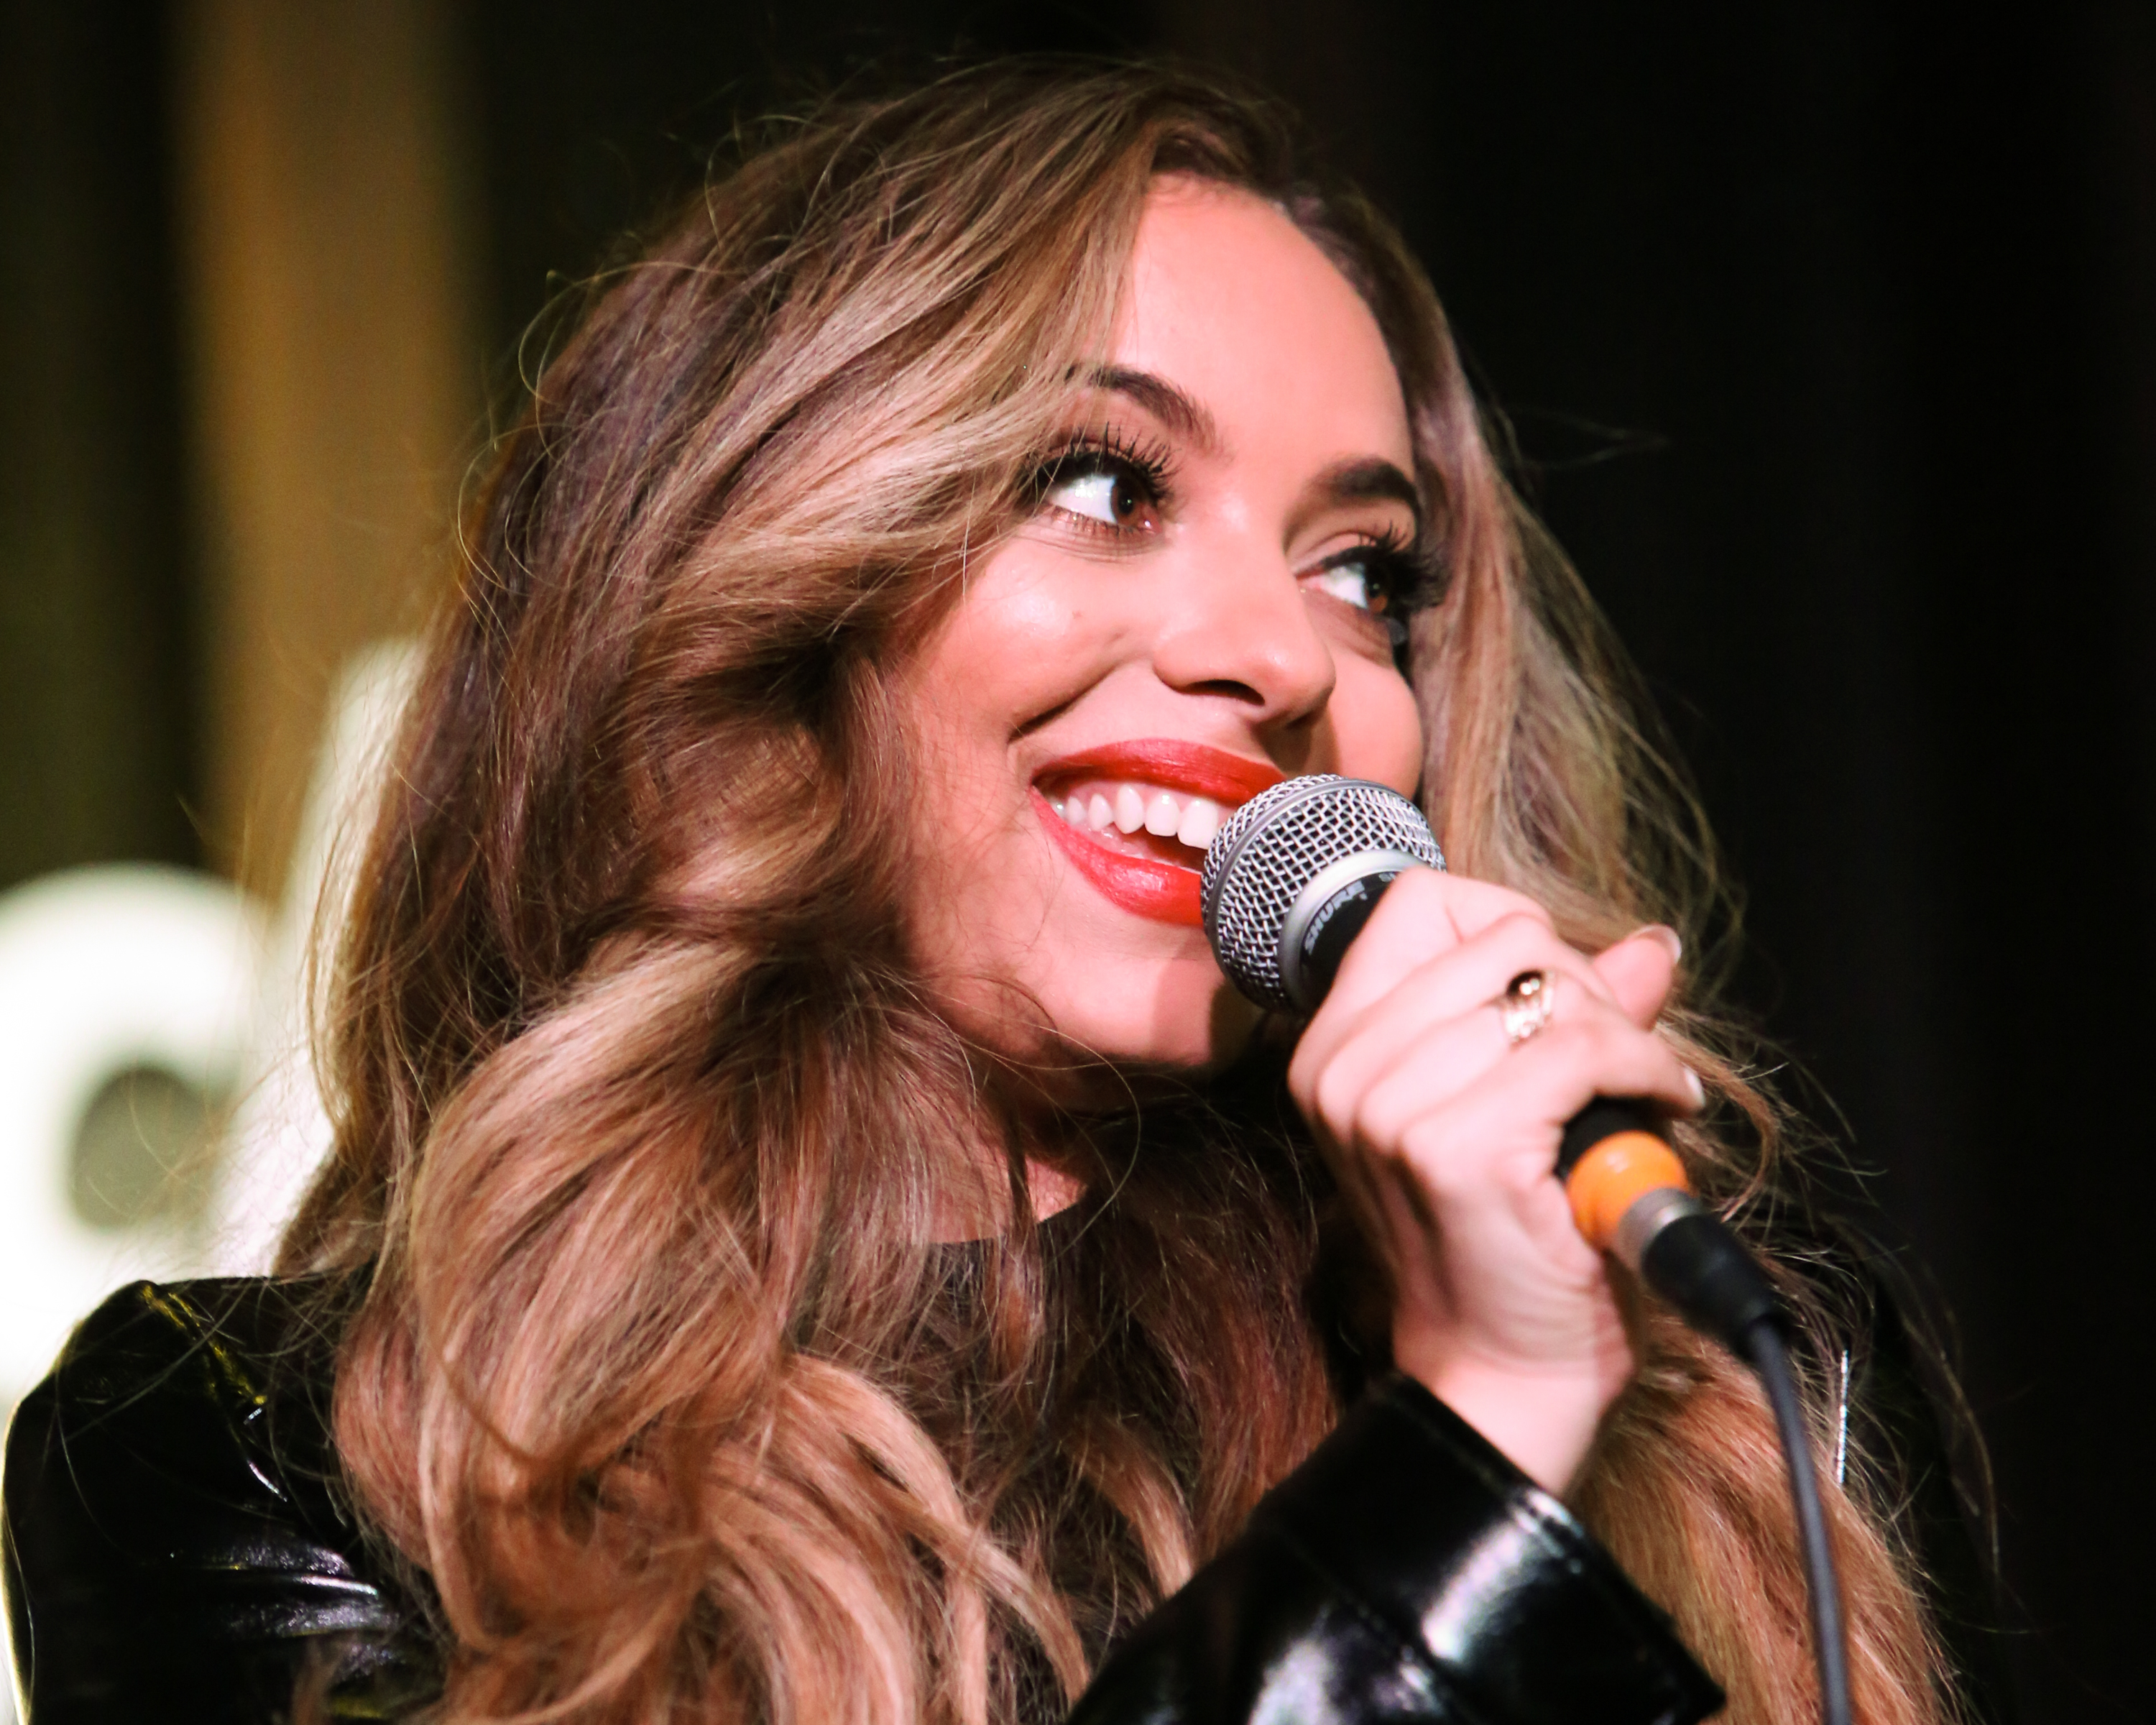 HOLLYWOOD, CA - NOVEMBER 03:  Singer Jade Thirlwall of the Girl Group Little Mix performs live at the Hard Rock Cafe on November 3, 2015 in Hollywood, California.  (Photo by Paul Archuleta/FilmMagic)